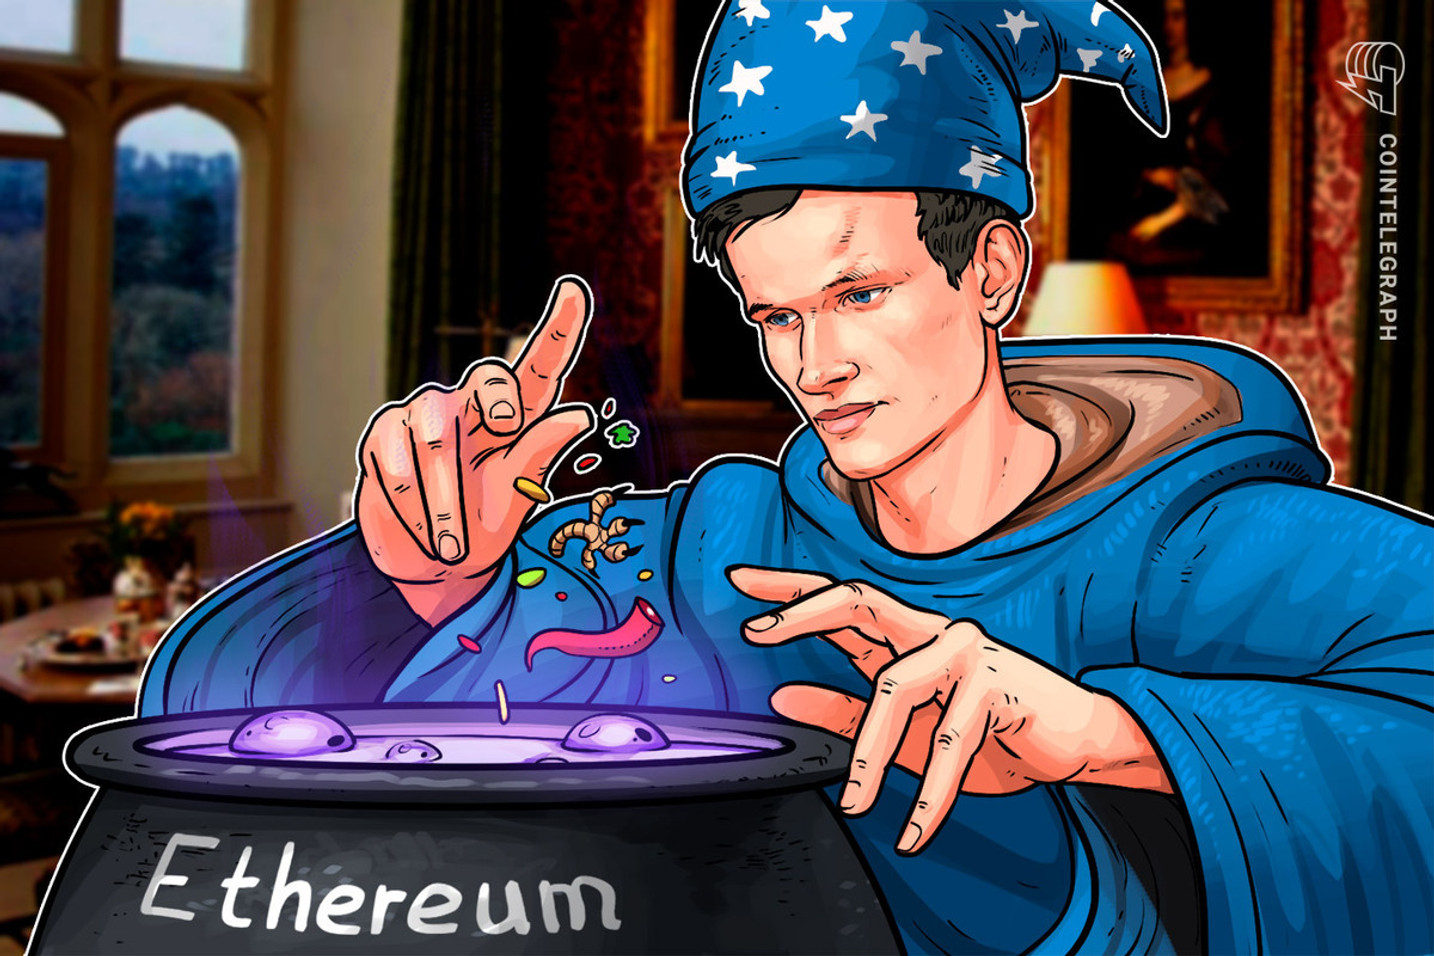 Vitalik: Obsolete Mining Hardware Could be Used for Zero Knowledge Proofs